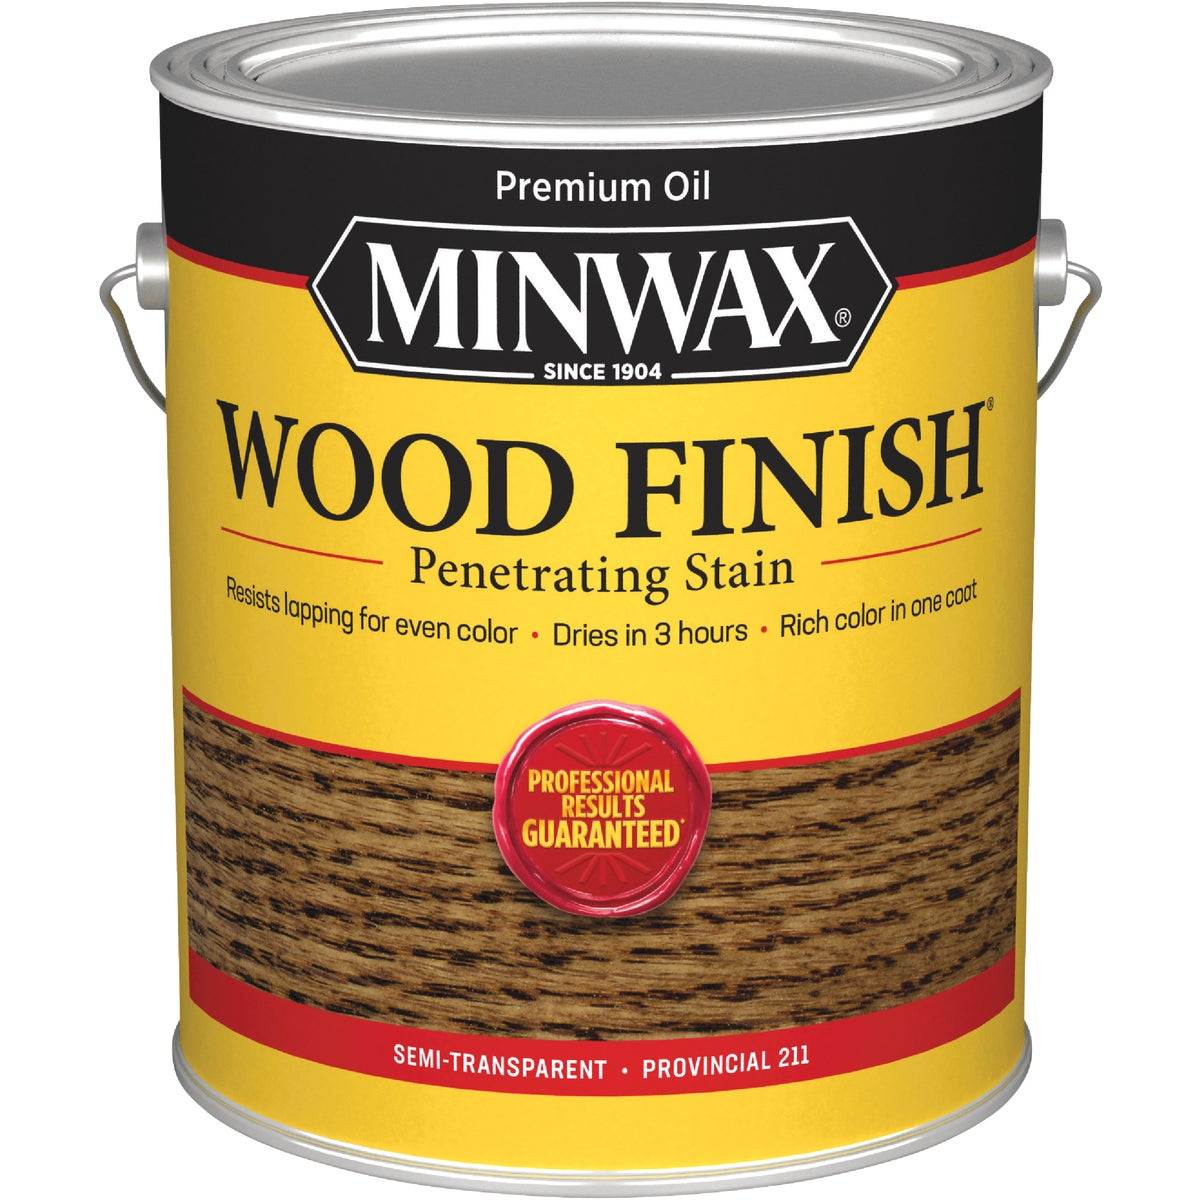 VOC PROVNCIAL WOOD STAIN - 710720000 by Minwax Company